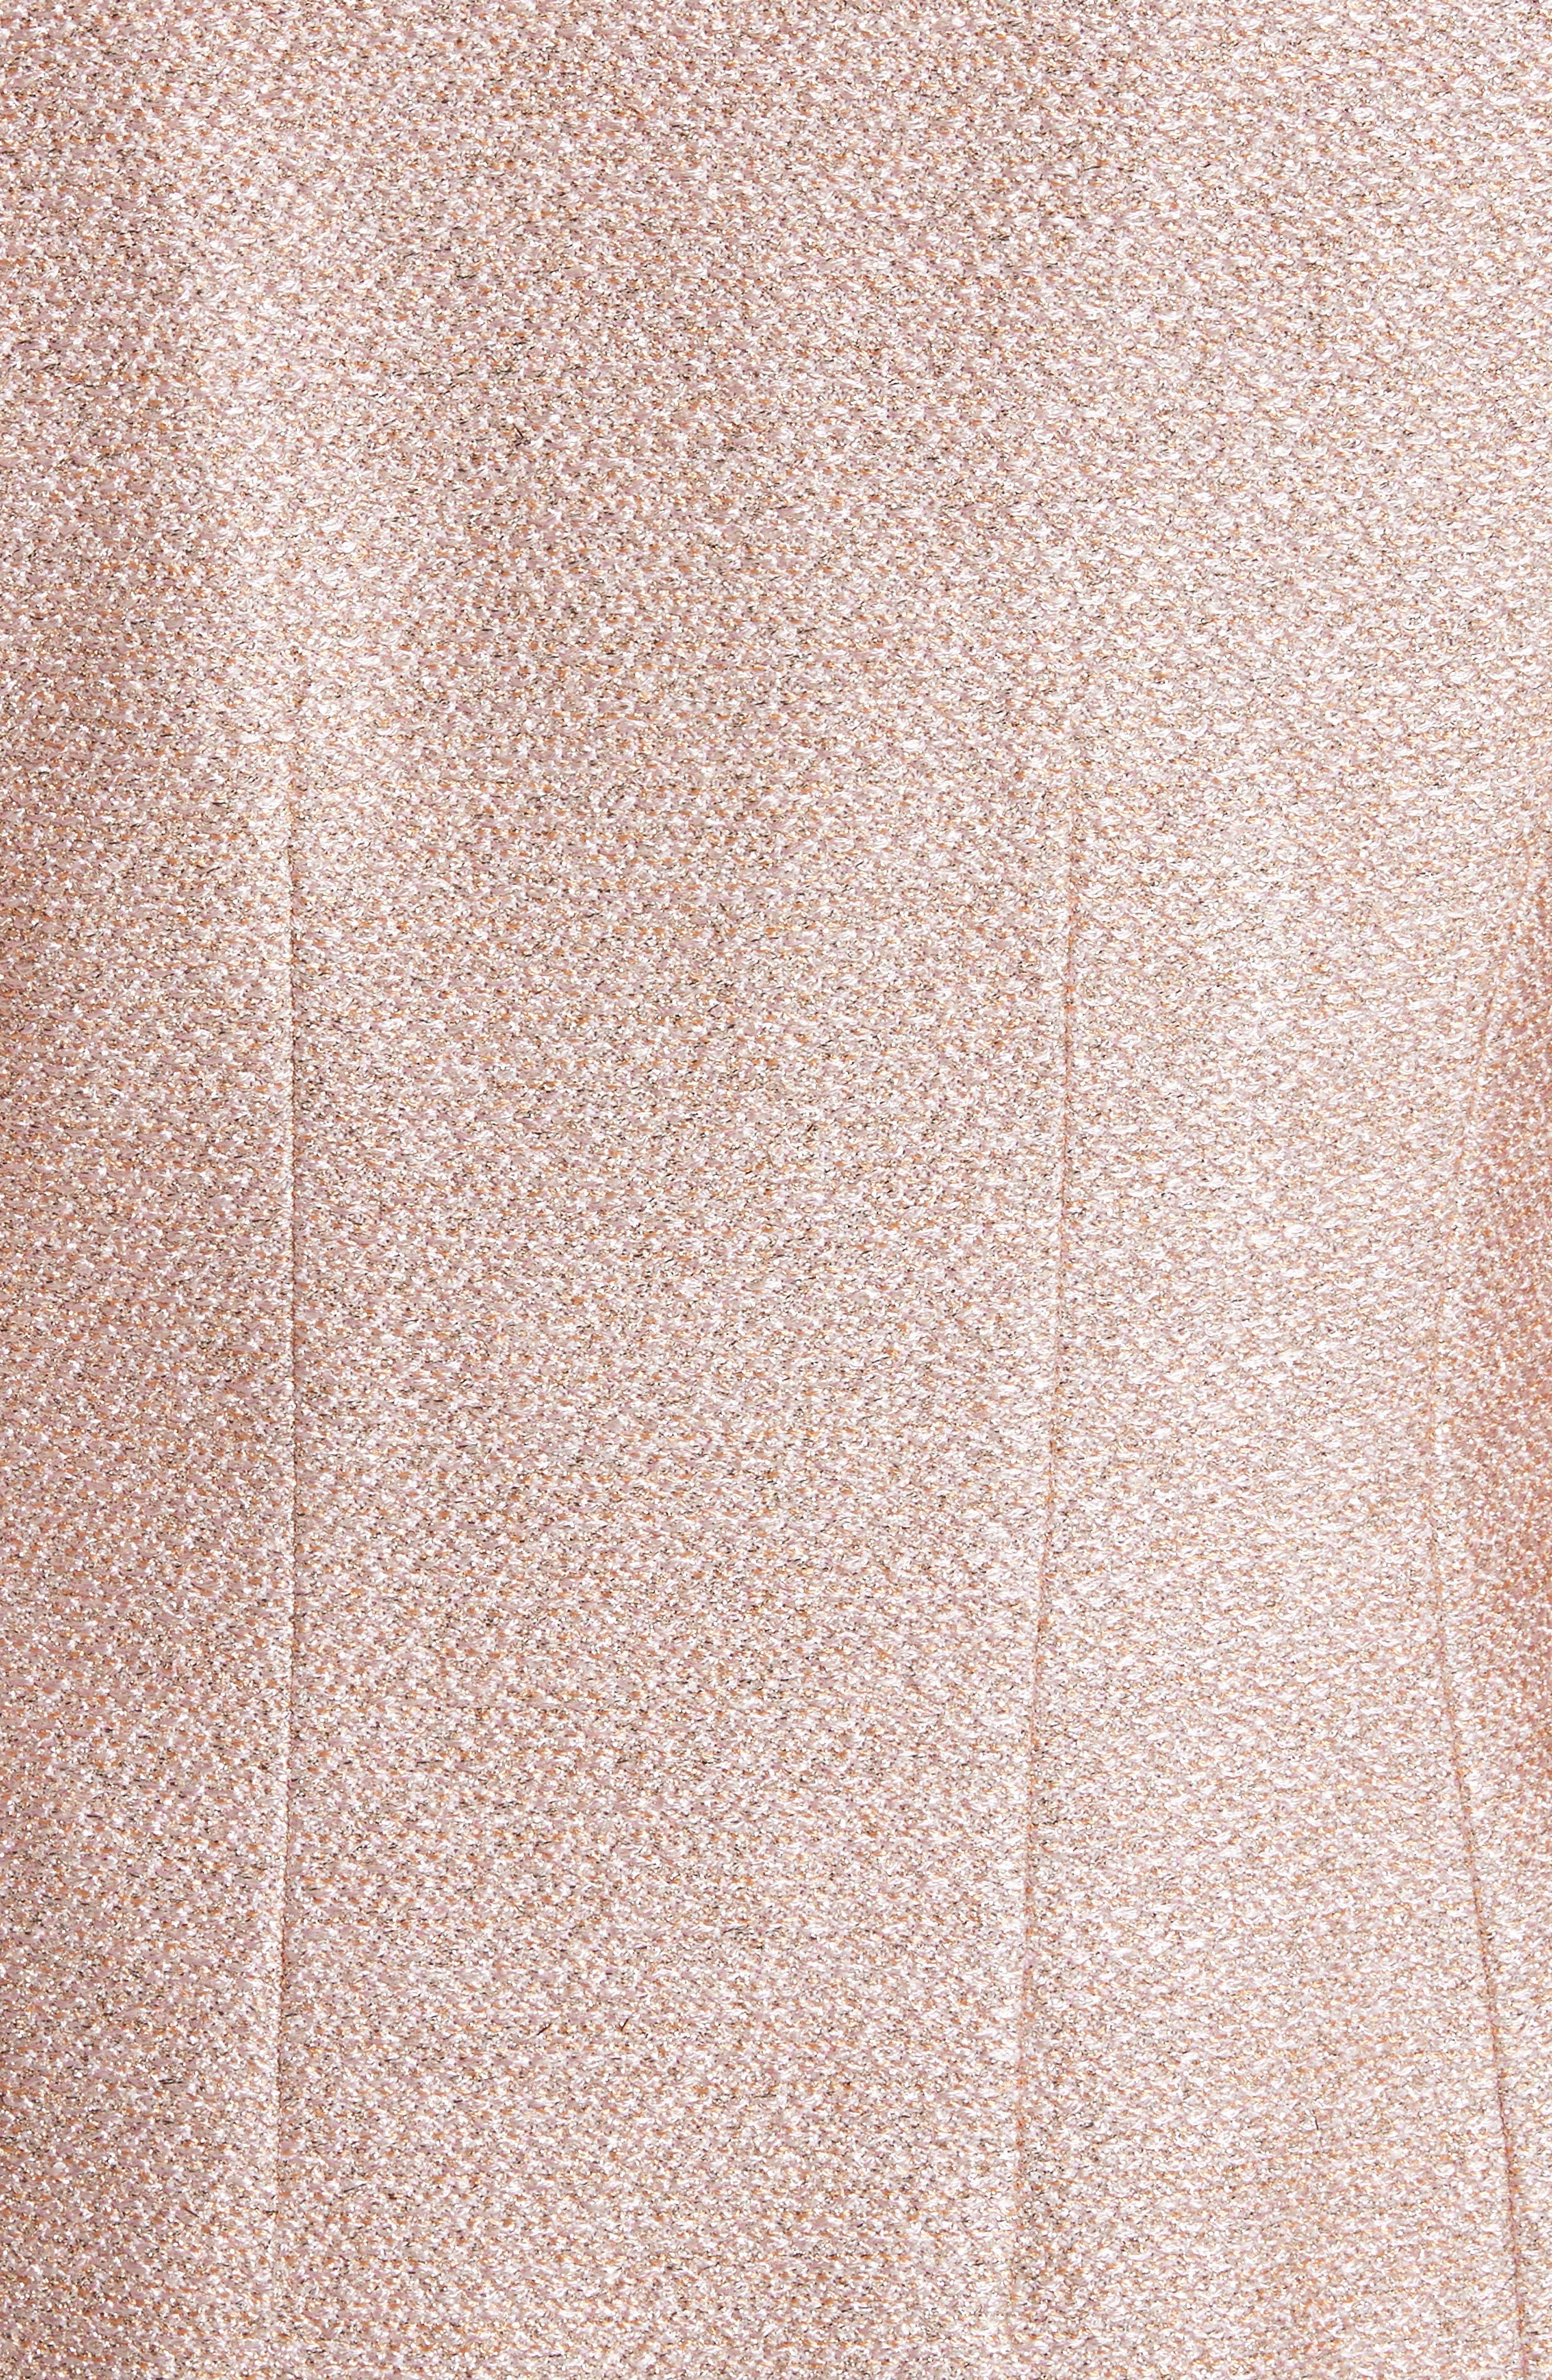 Double Breasted Frosted Metallic Knit Jacket,                             Alternate thumbnail 6, color,                             660